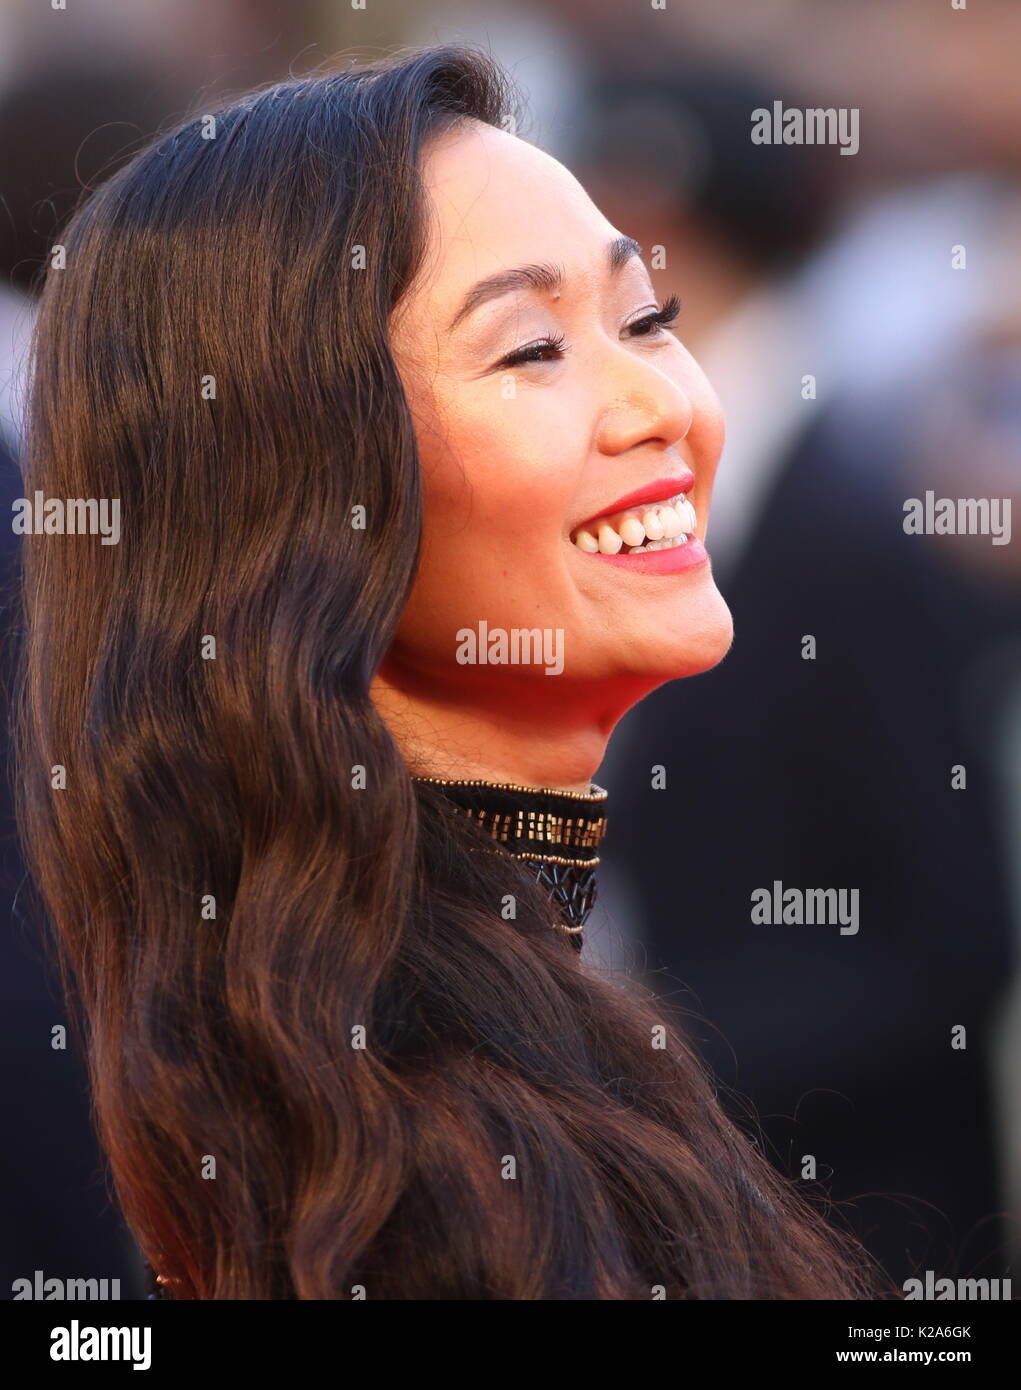 Venice, Italy. 30th Aug, 2017. Hong Chau attends the Downsizing Premiere during the 74th Venice International Film Festival at Lido of Venice on 30th August, 2017. Credit: Andrea Spinelli/Alamy Live News - Stock Image